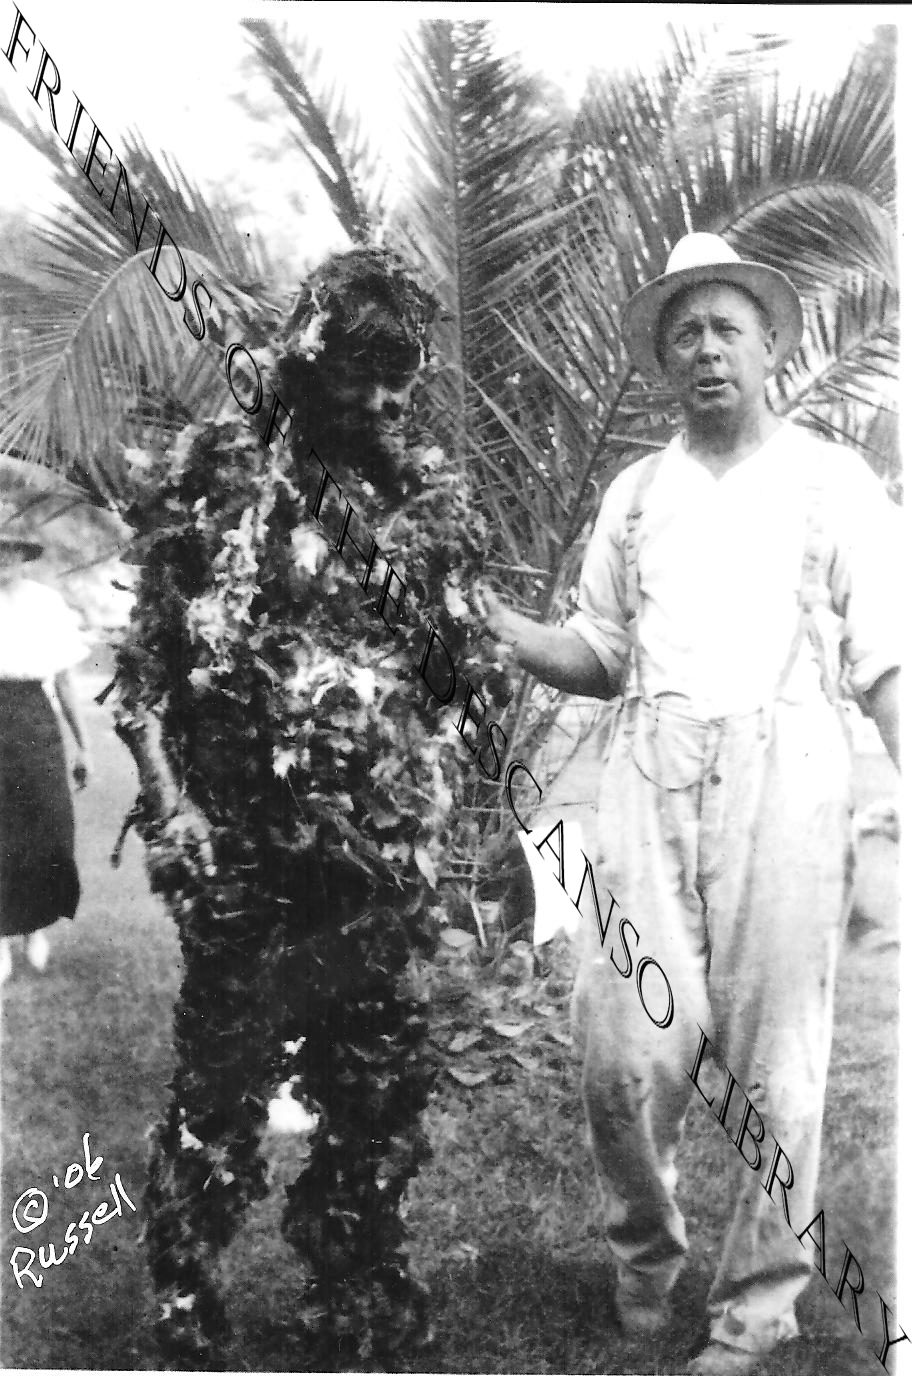 man tarred and feathered during ww1